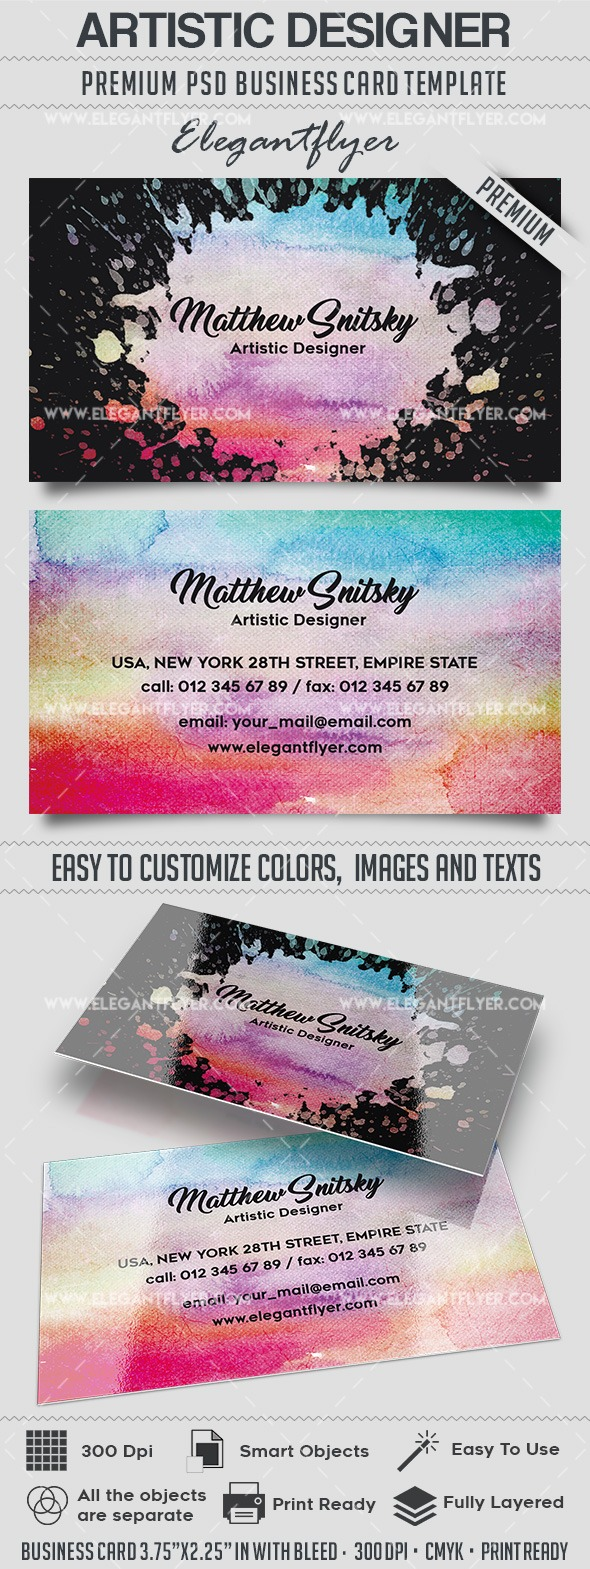 Artistic Designer – Business Card Templates PSD